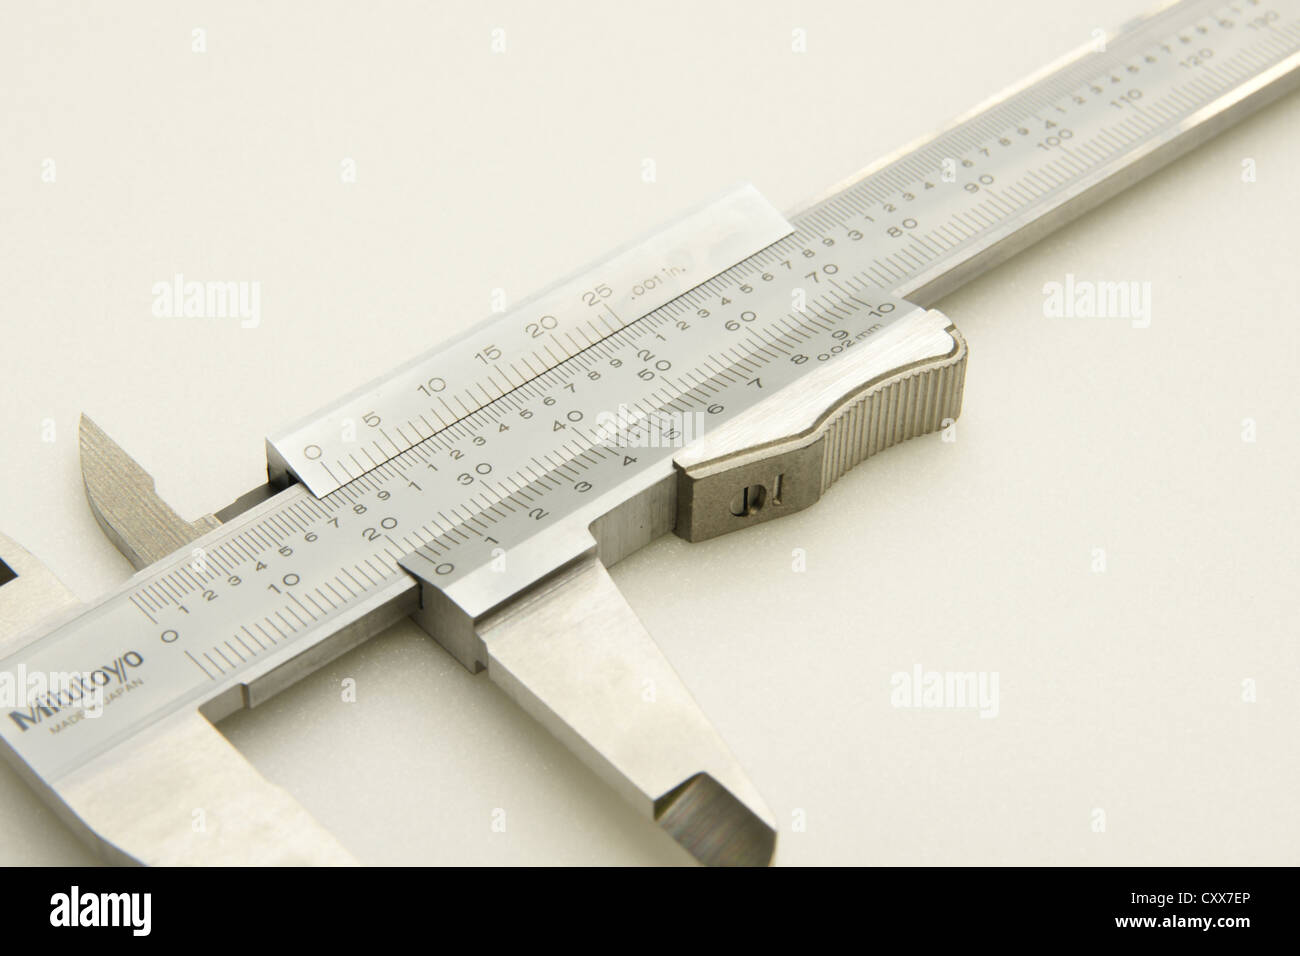 Closeup of the scales on a Mitutoyo vernier caliper - Stock Image